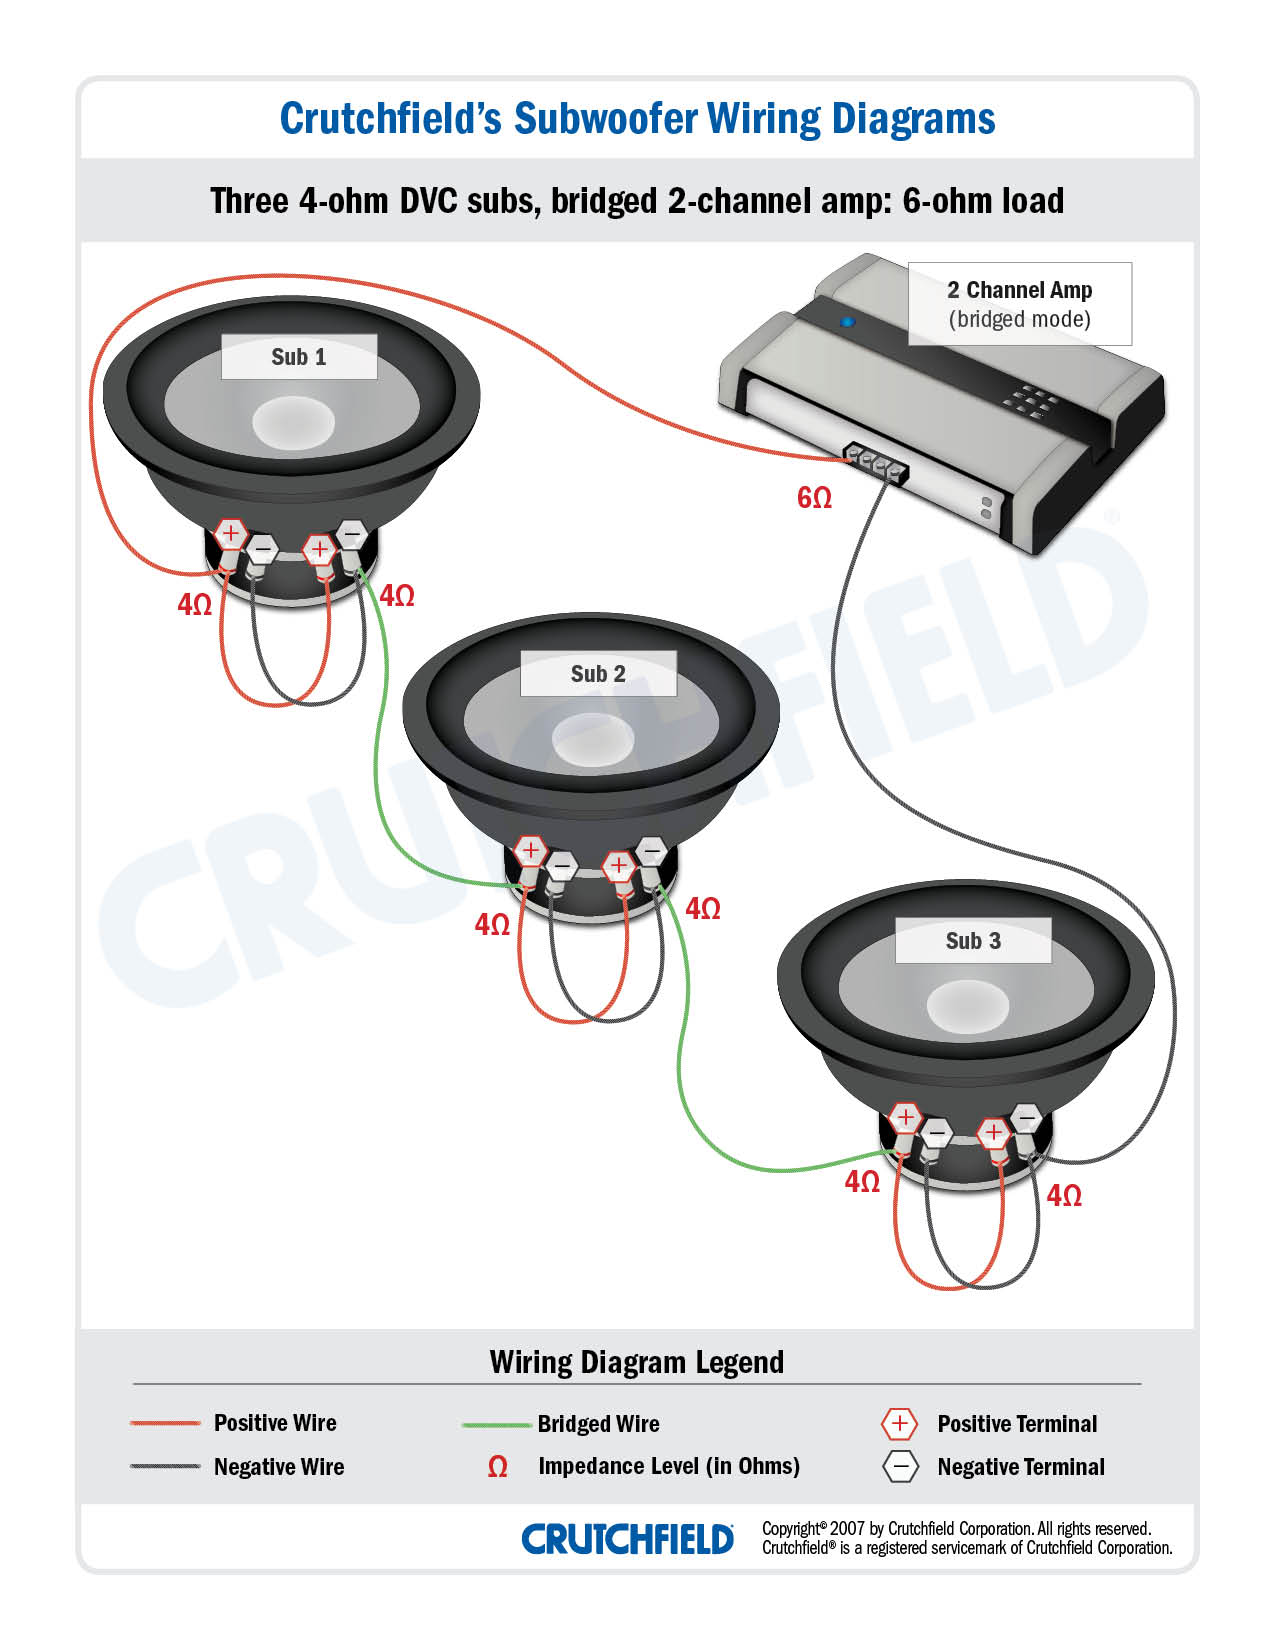 3 DVC 4 ohm 2 ch pioneer subwoofer wiring diagram 1 ohm subwoofer wiring \u2022 wiring subwoofer wiring diagram ohms at n-0.co